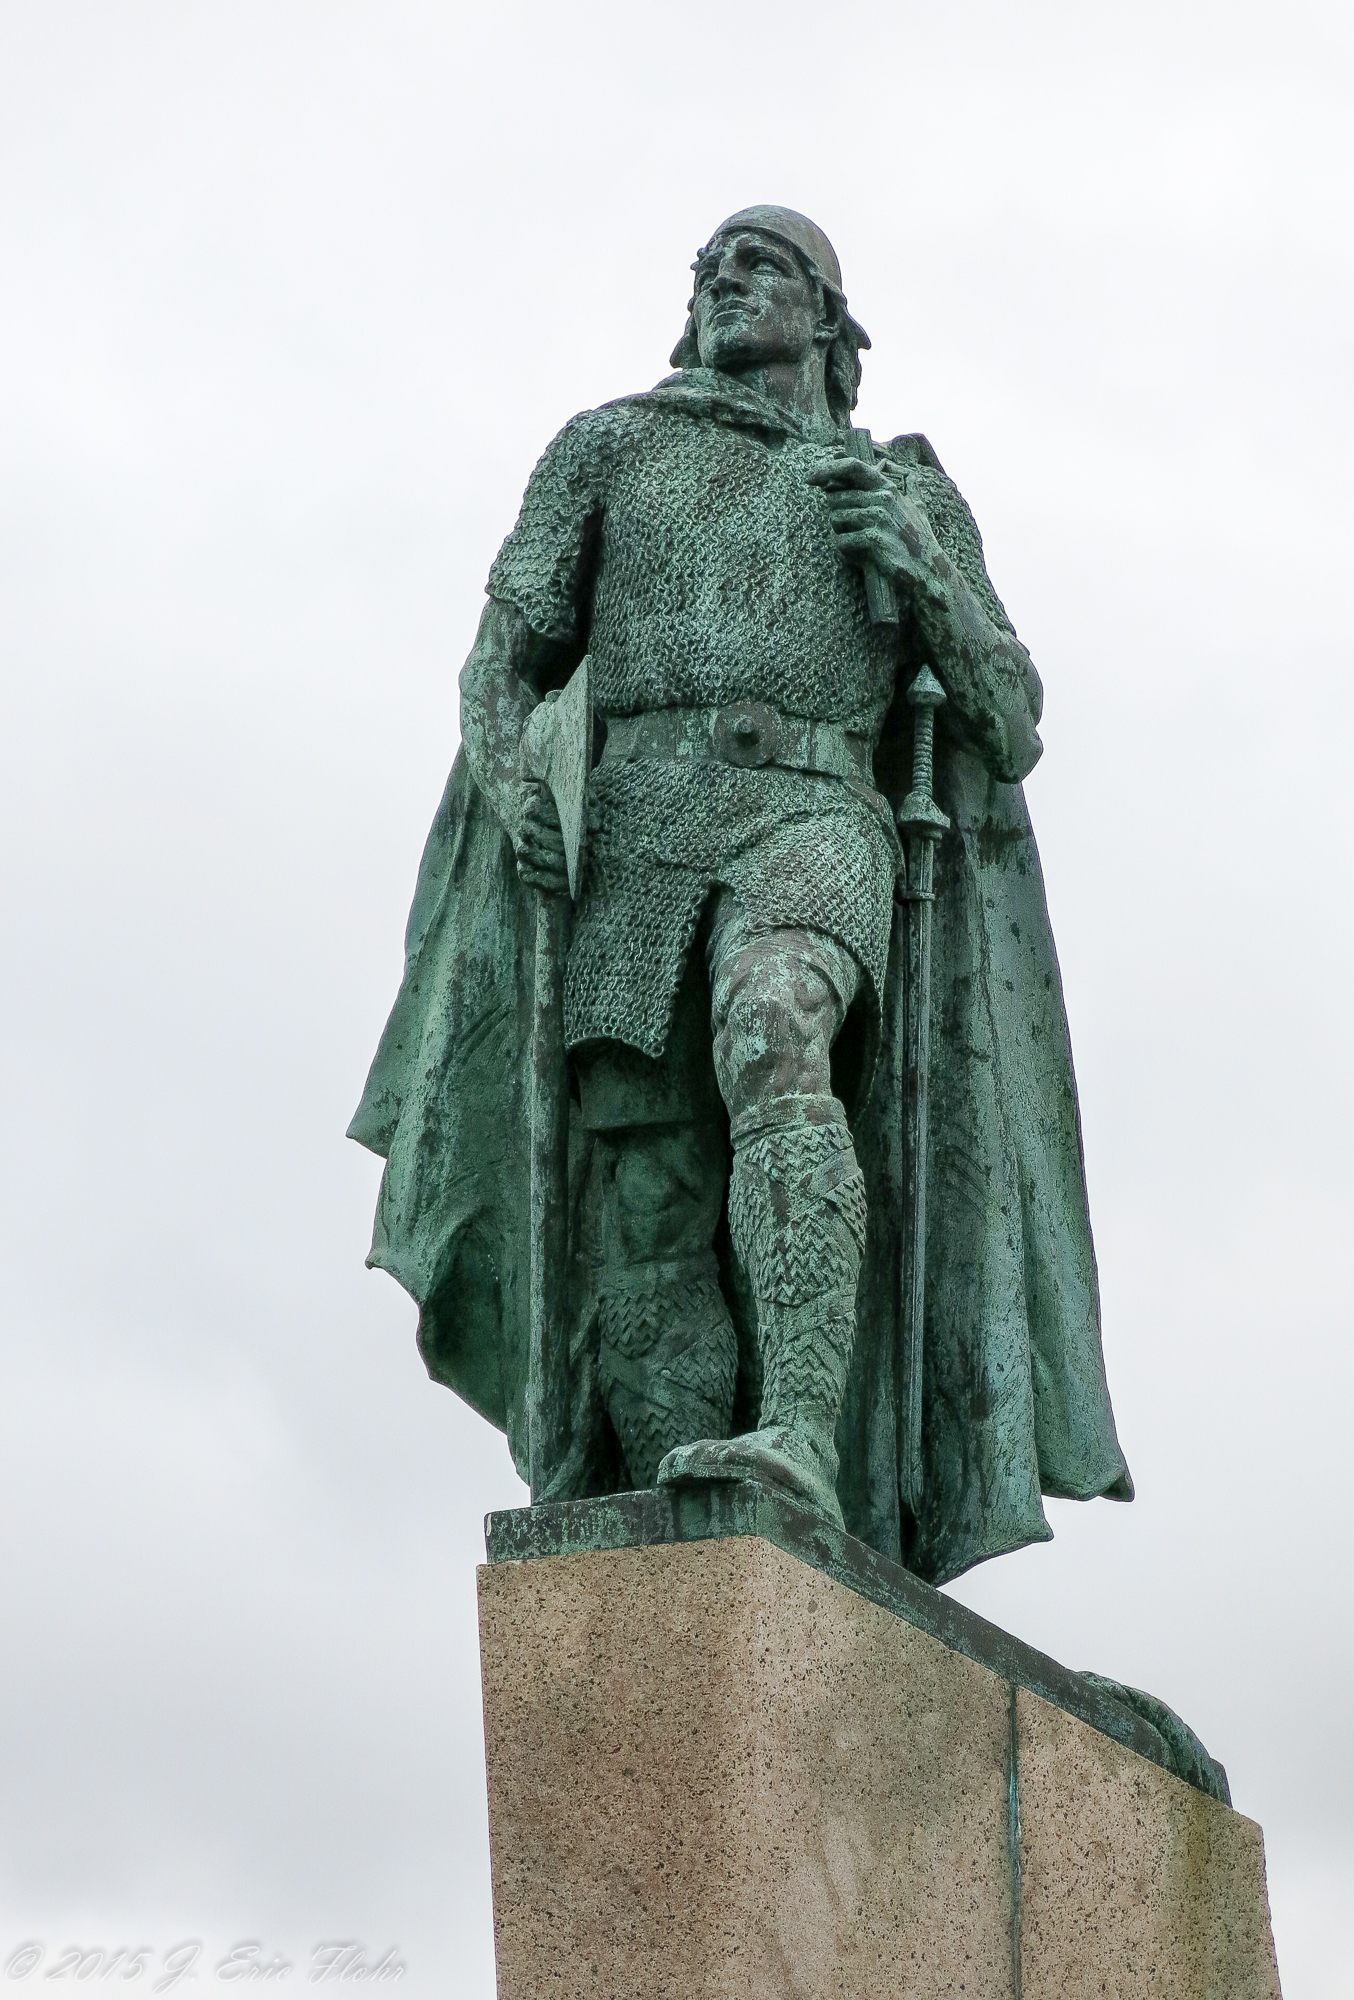 Leif Statue